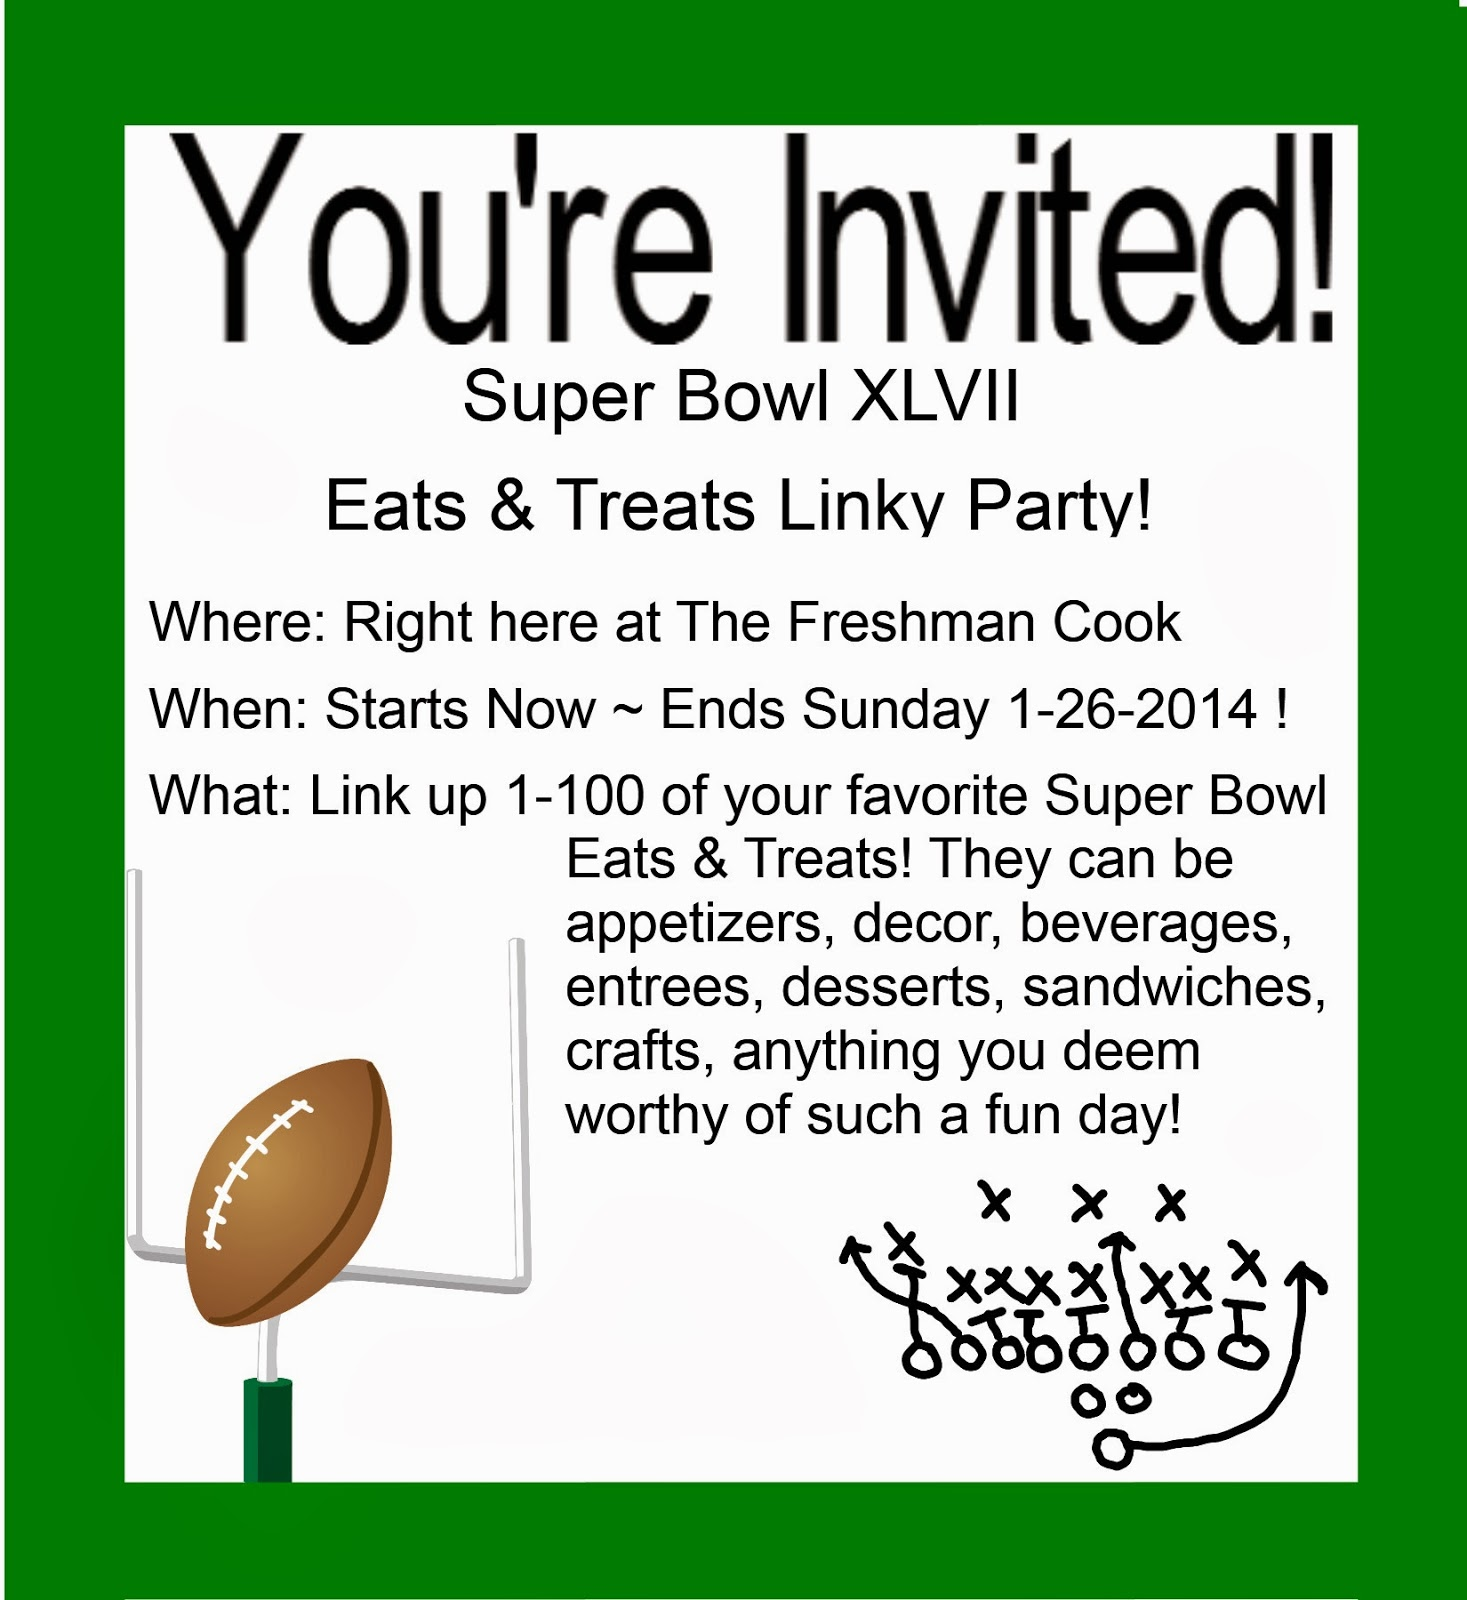 The Freshman Cook Super Bowl Linky Party